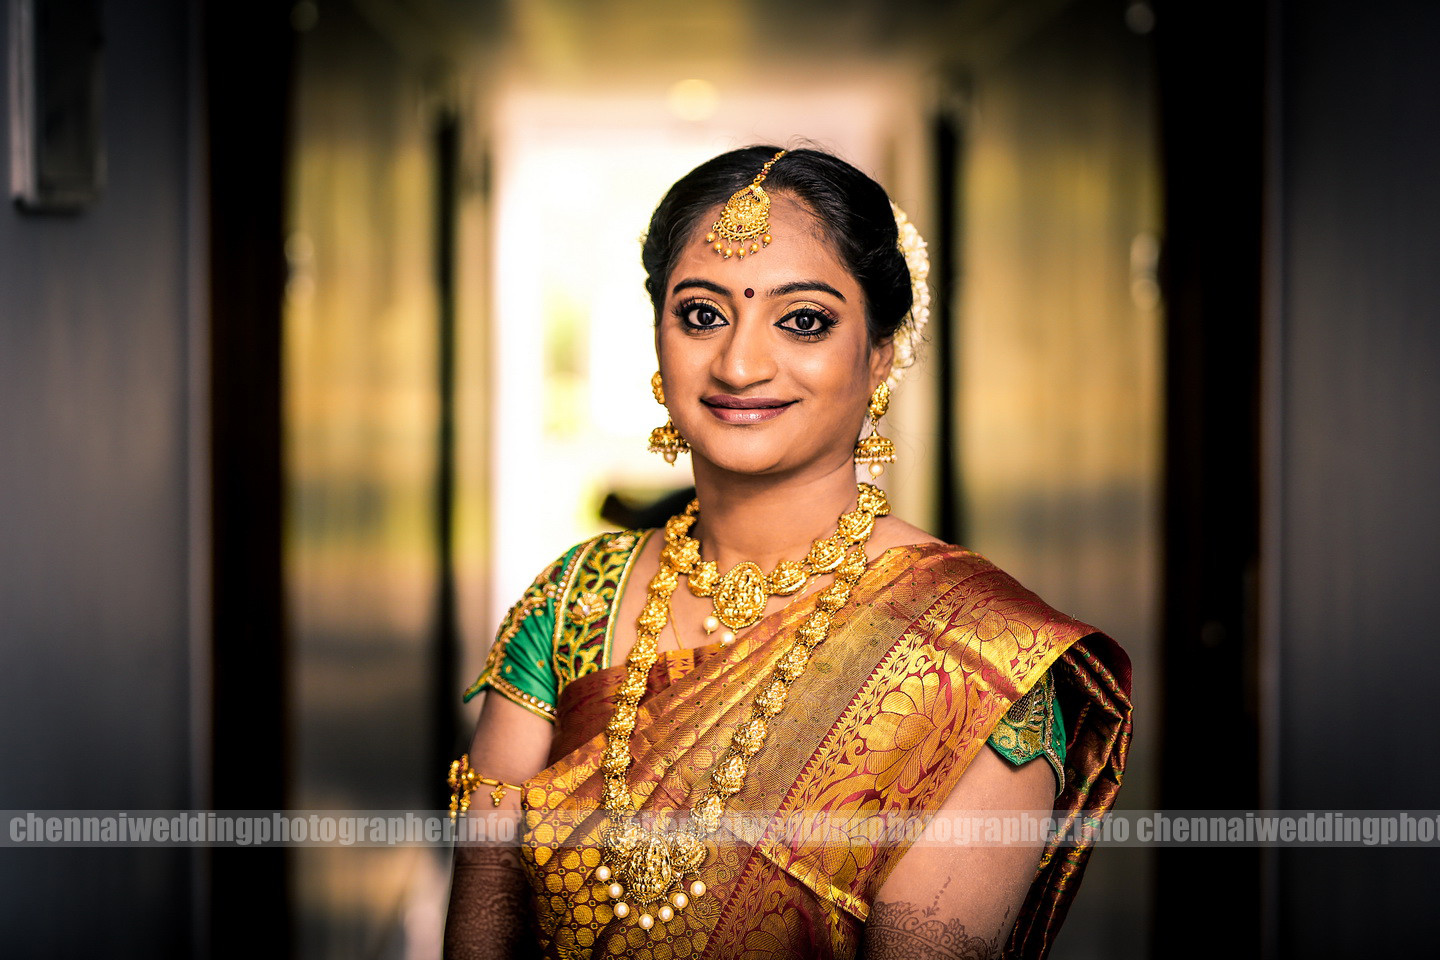 tamil wedding candid photography